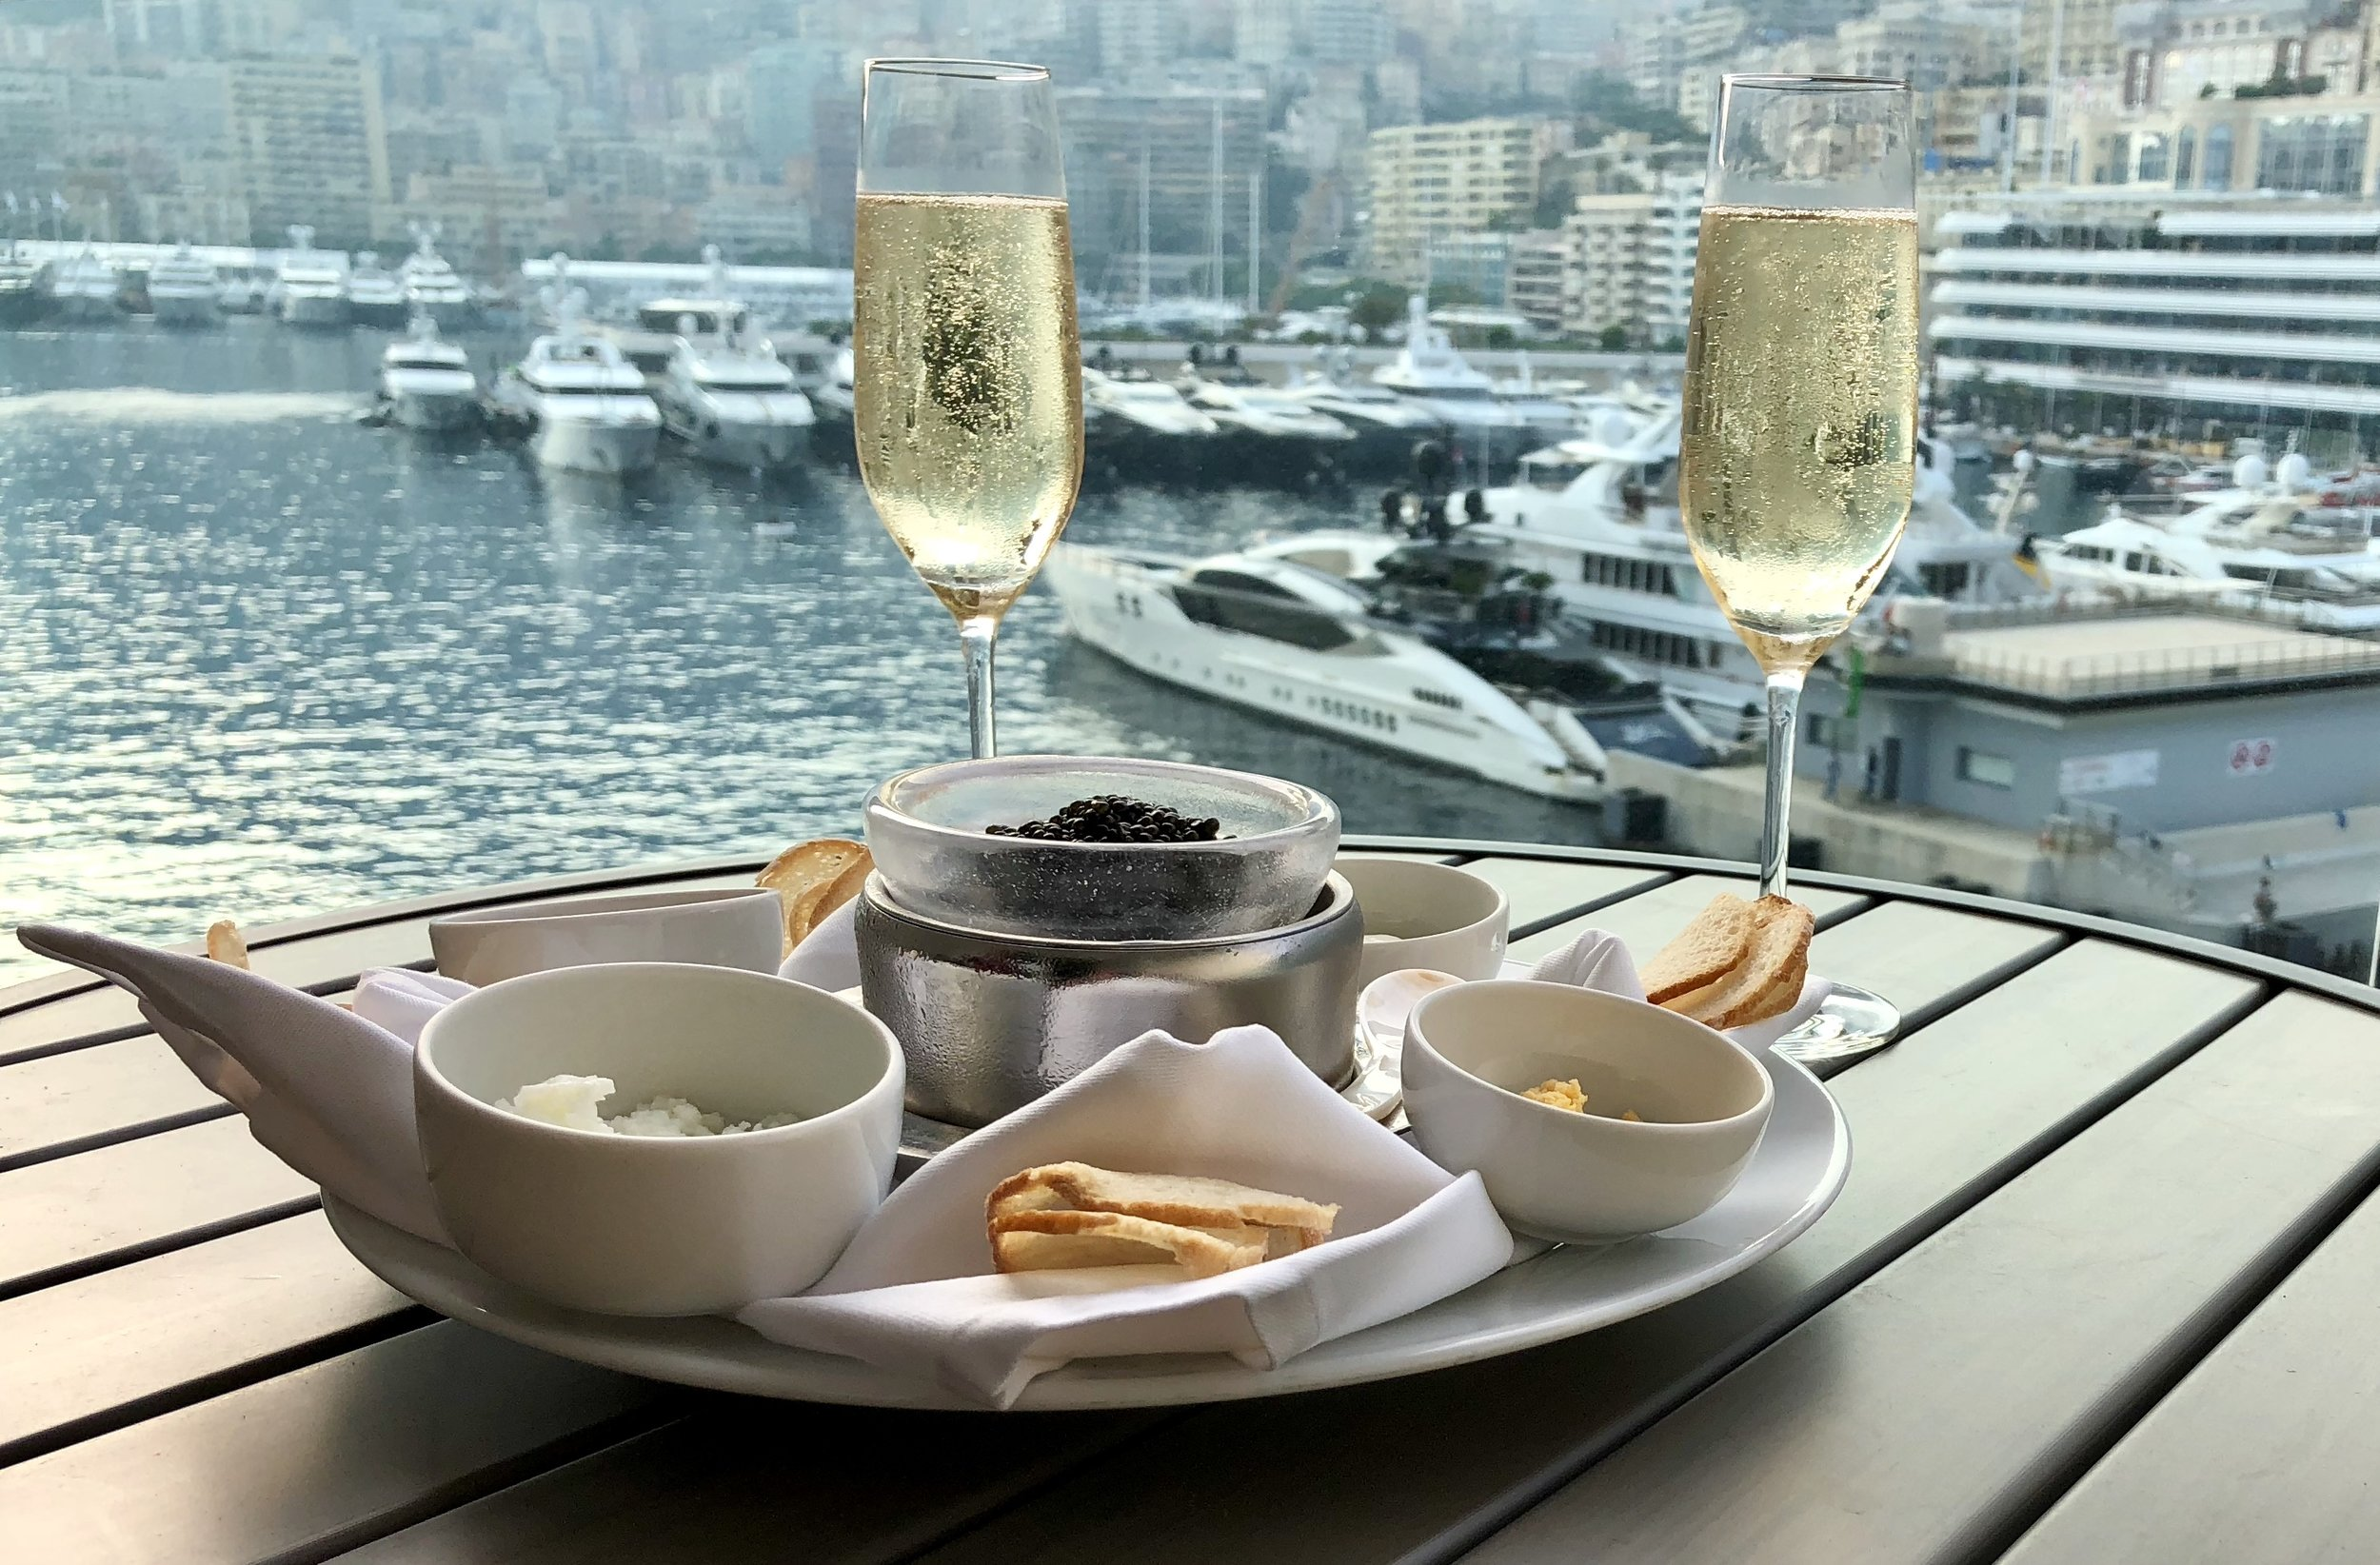 THIS is Seabourn living.